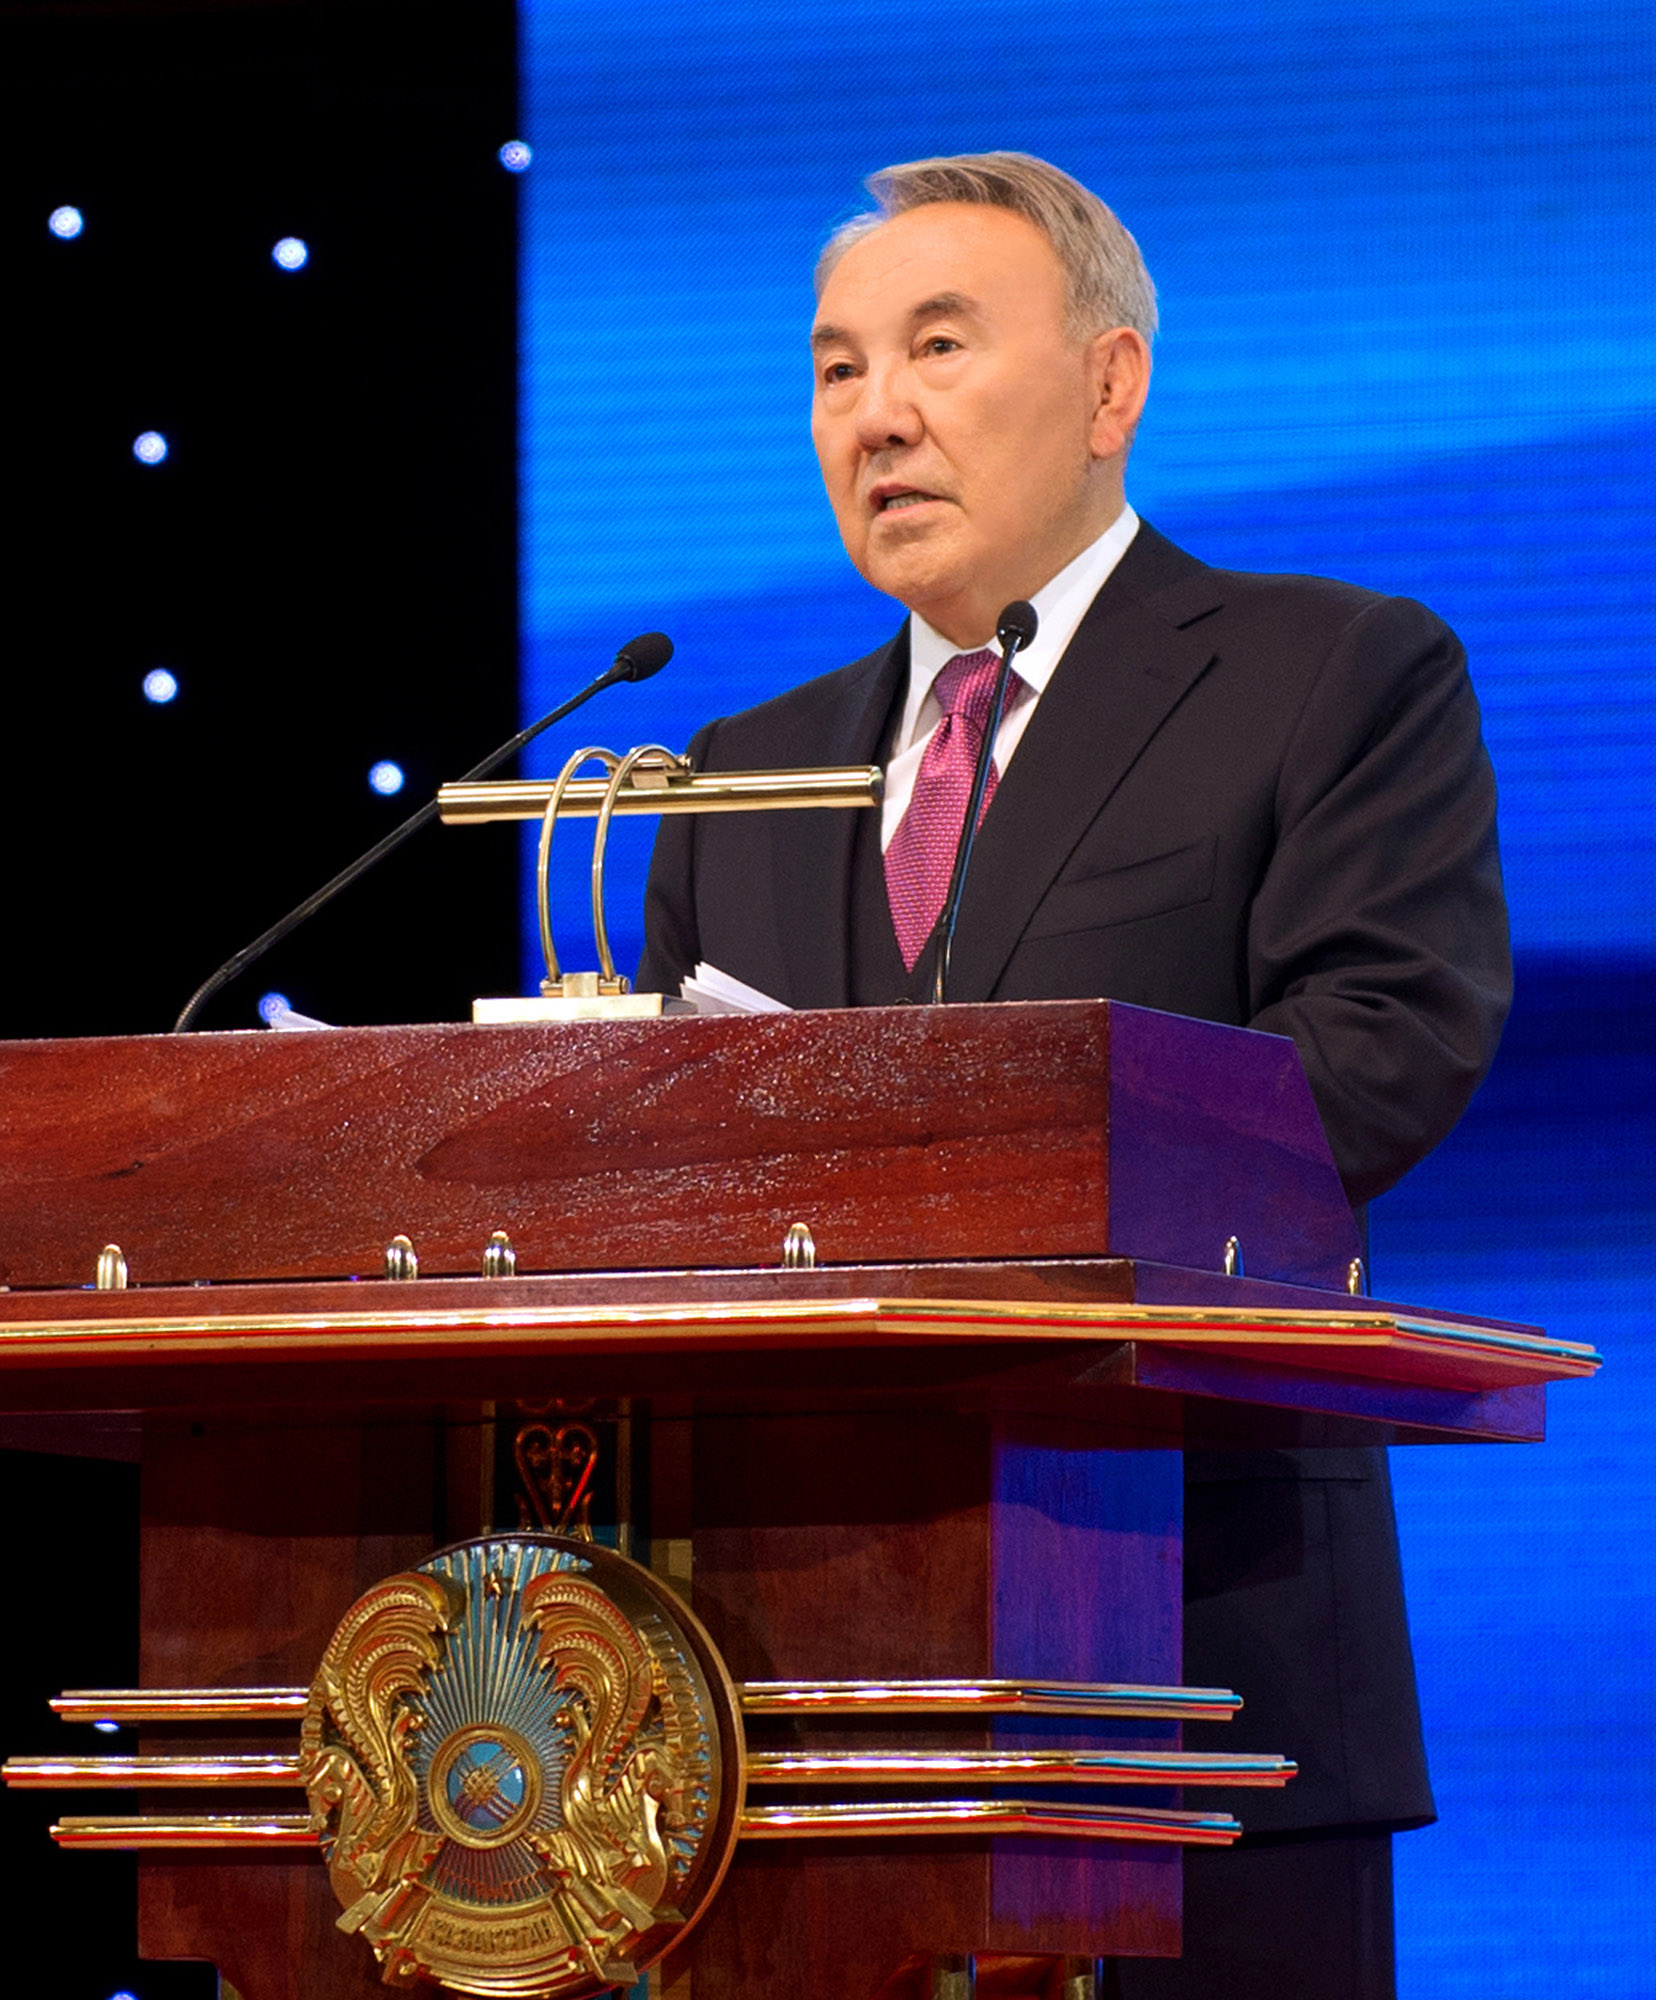 A solemn meeting devoted to the Independence Day of the Republic of Kazakhstan was held on December 14, 2013 with the participation of the President Nursultan Nazarbayev.